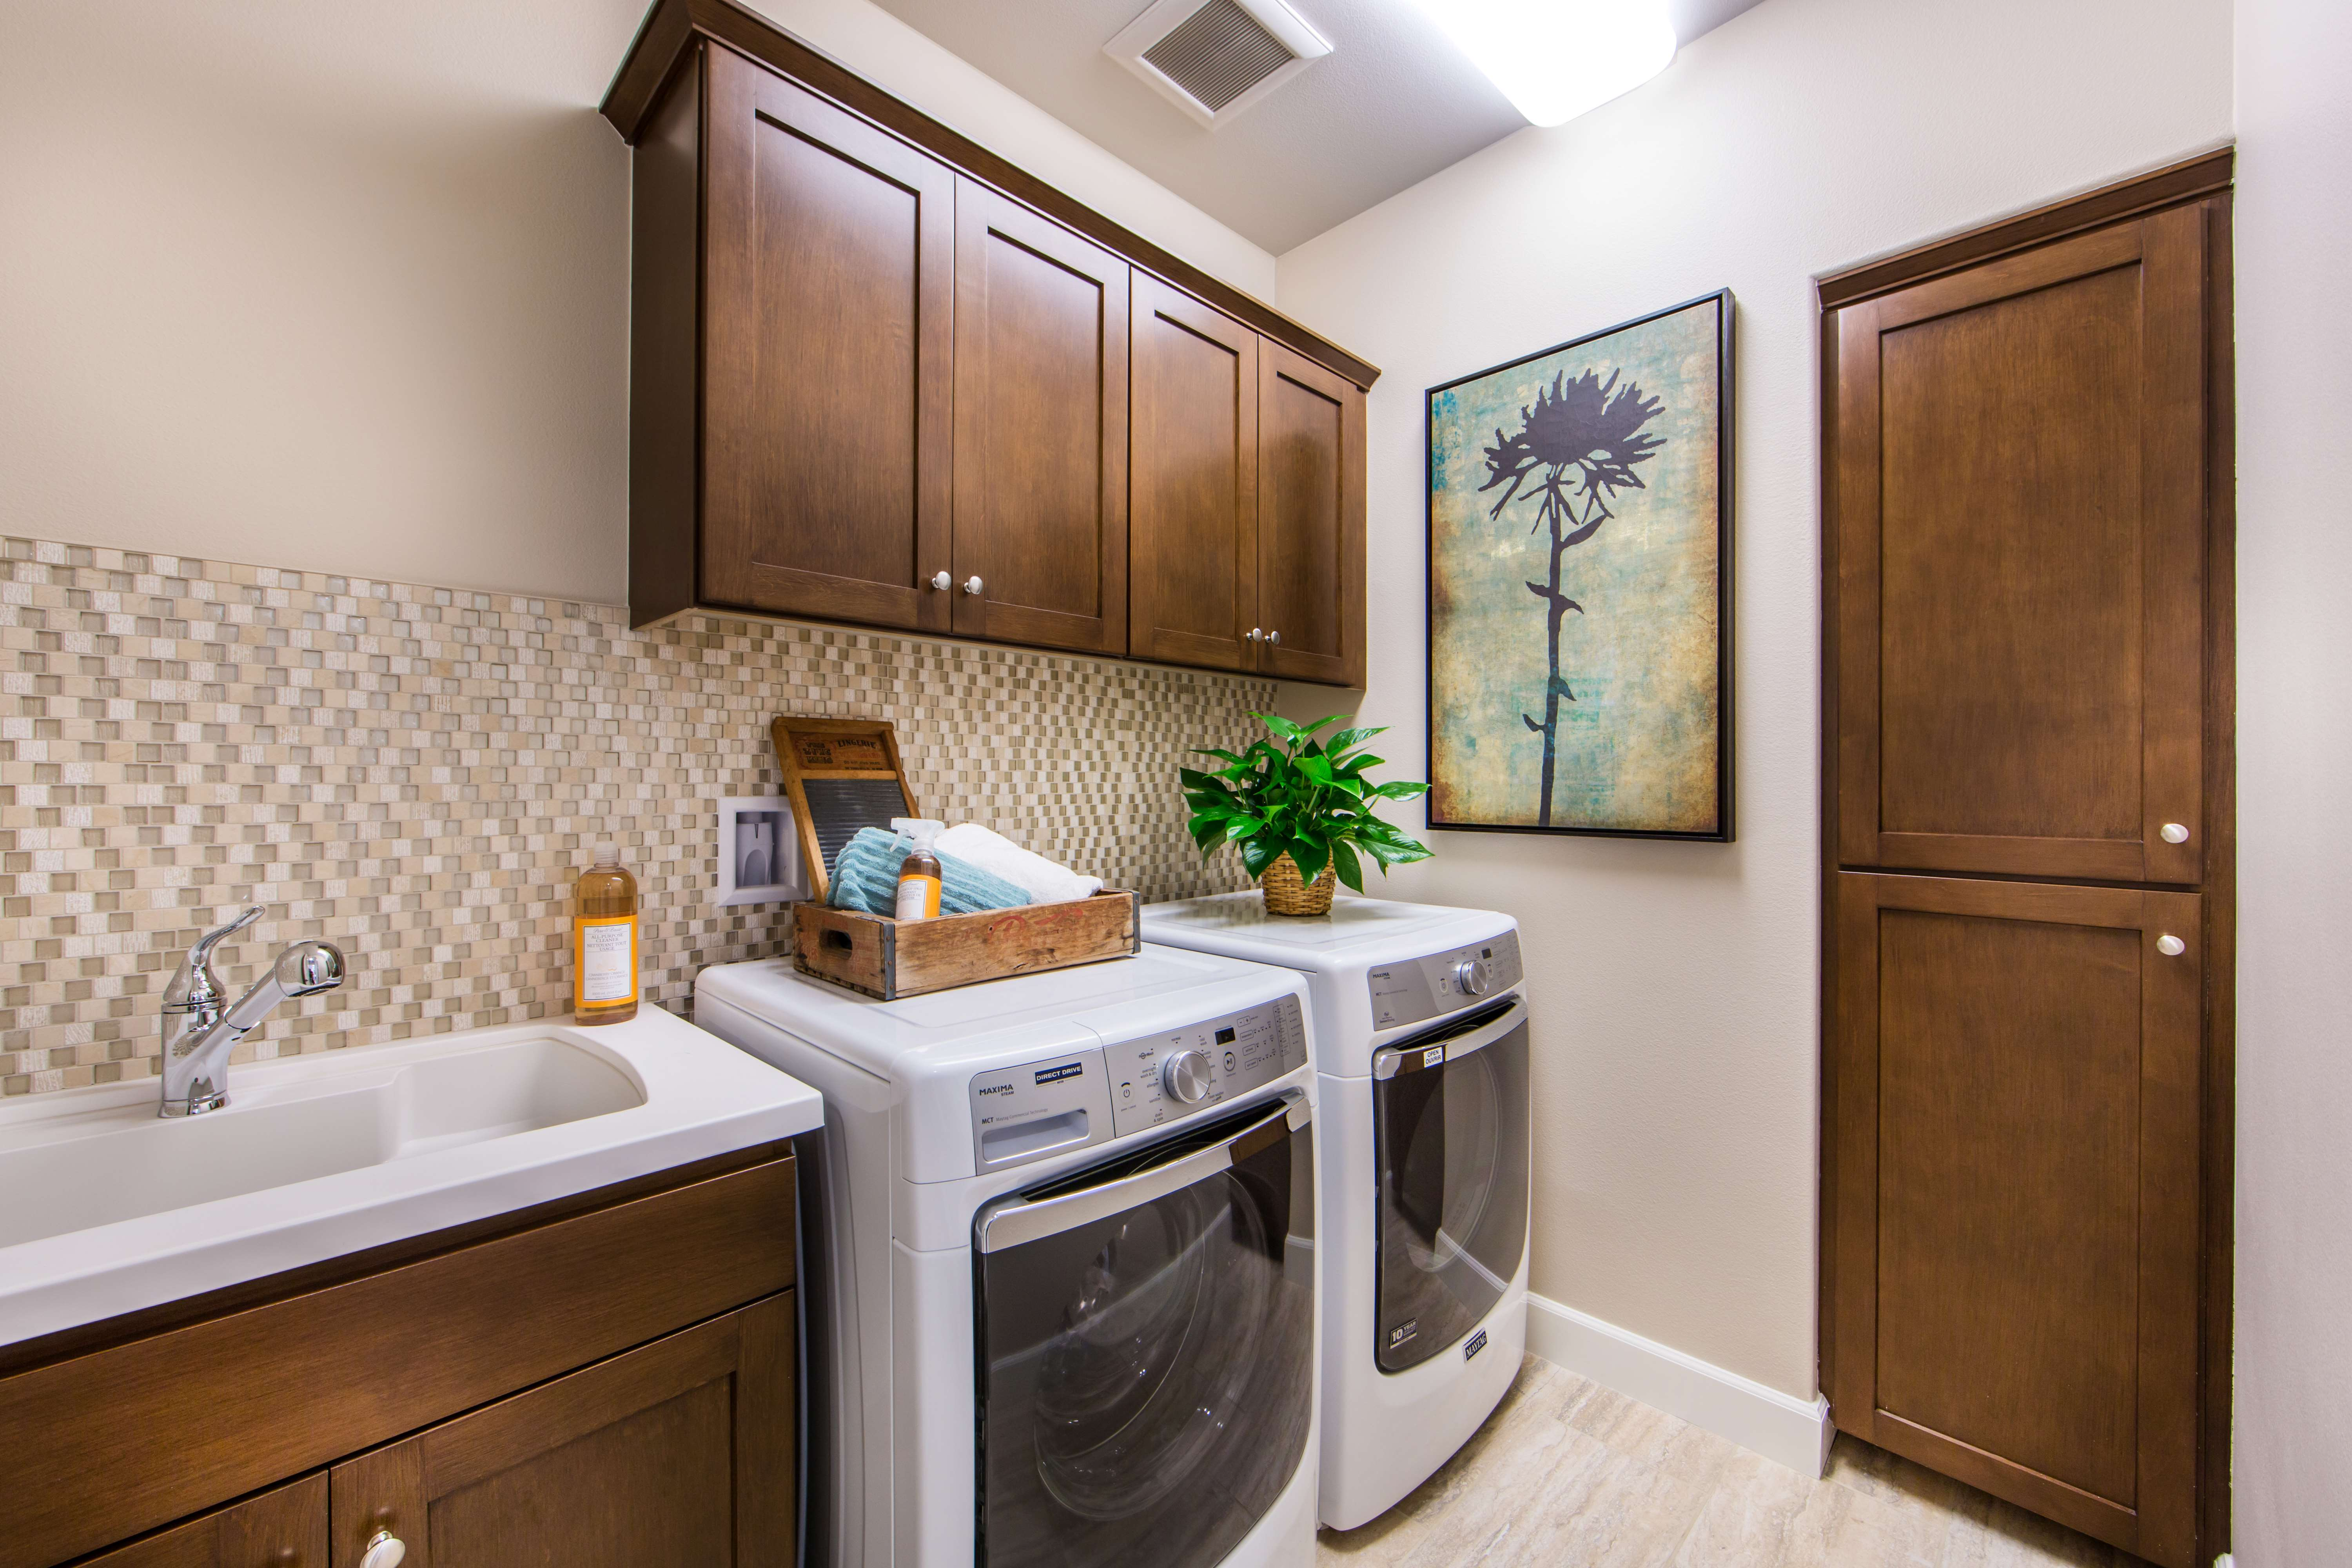 Laundry Room at Marin Residence 1 in Irvine